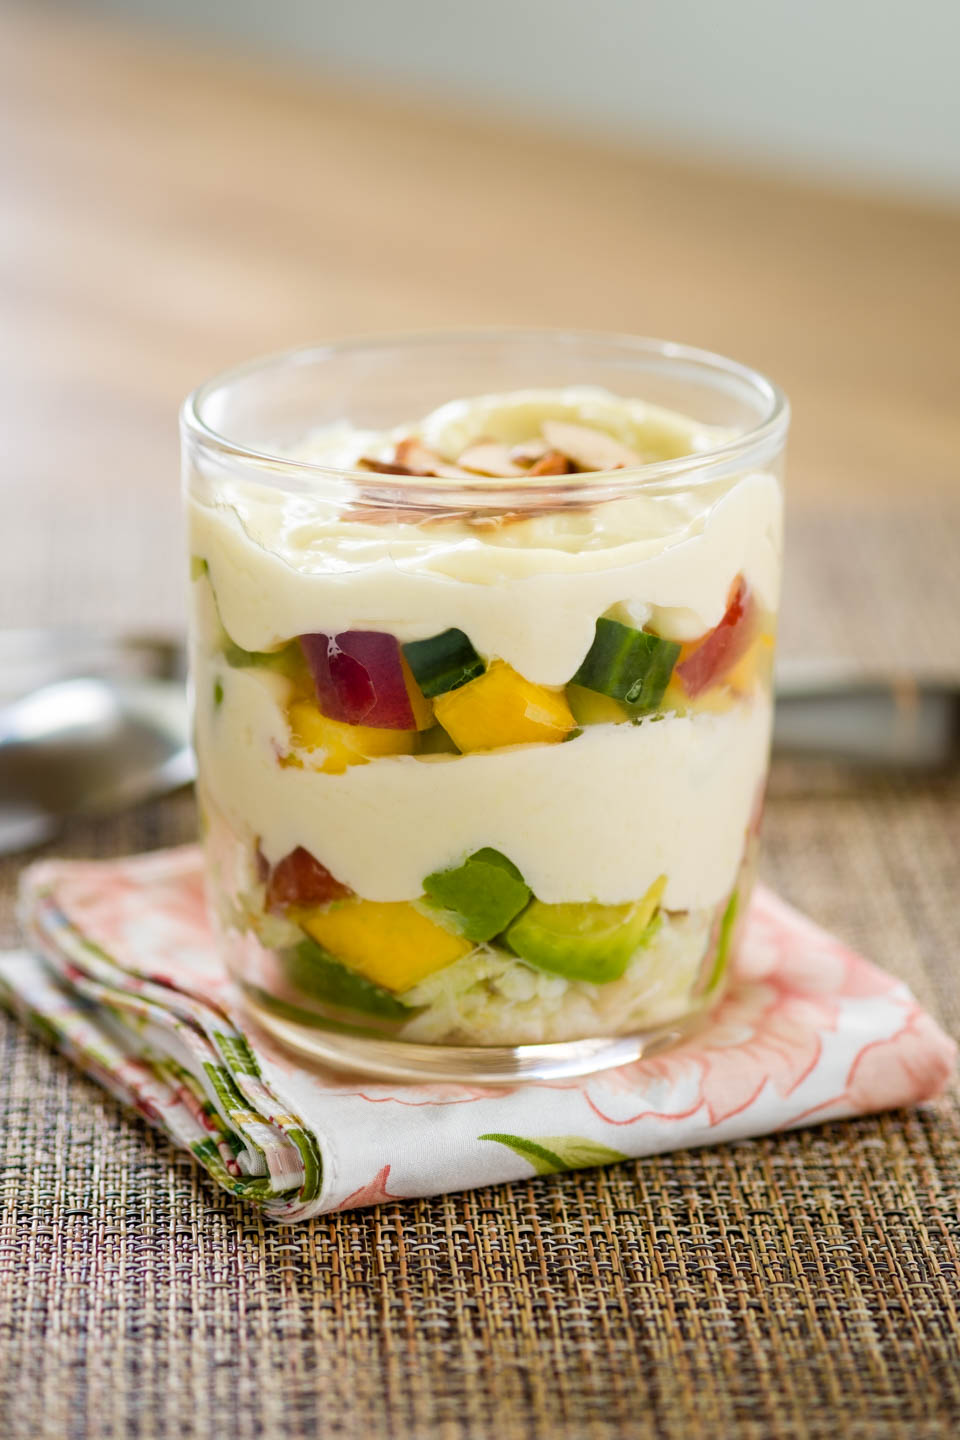 Fruit and veggie parfait